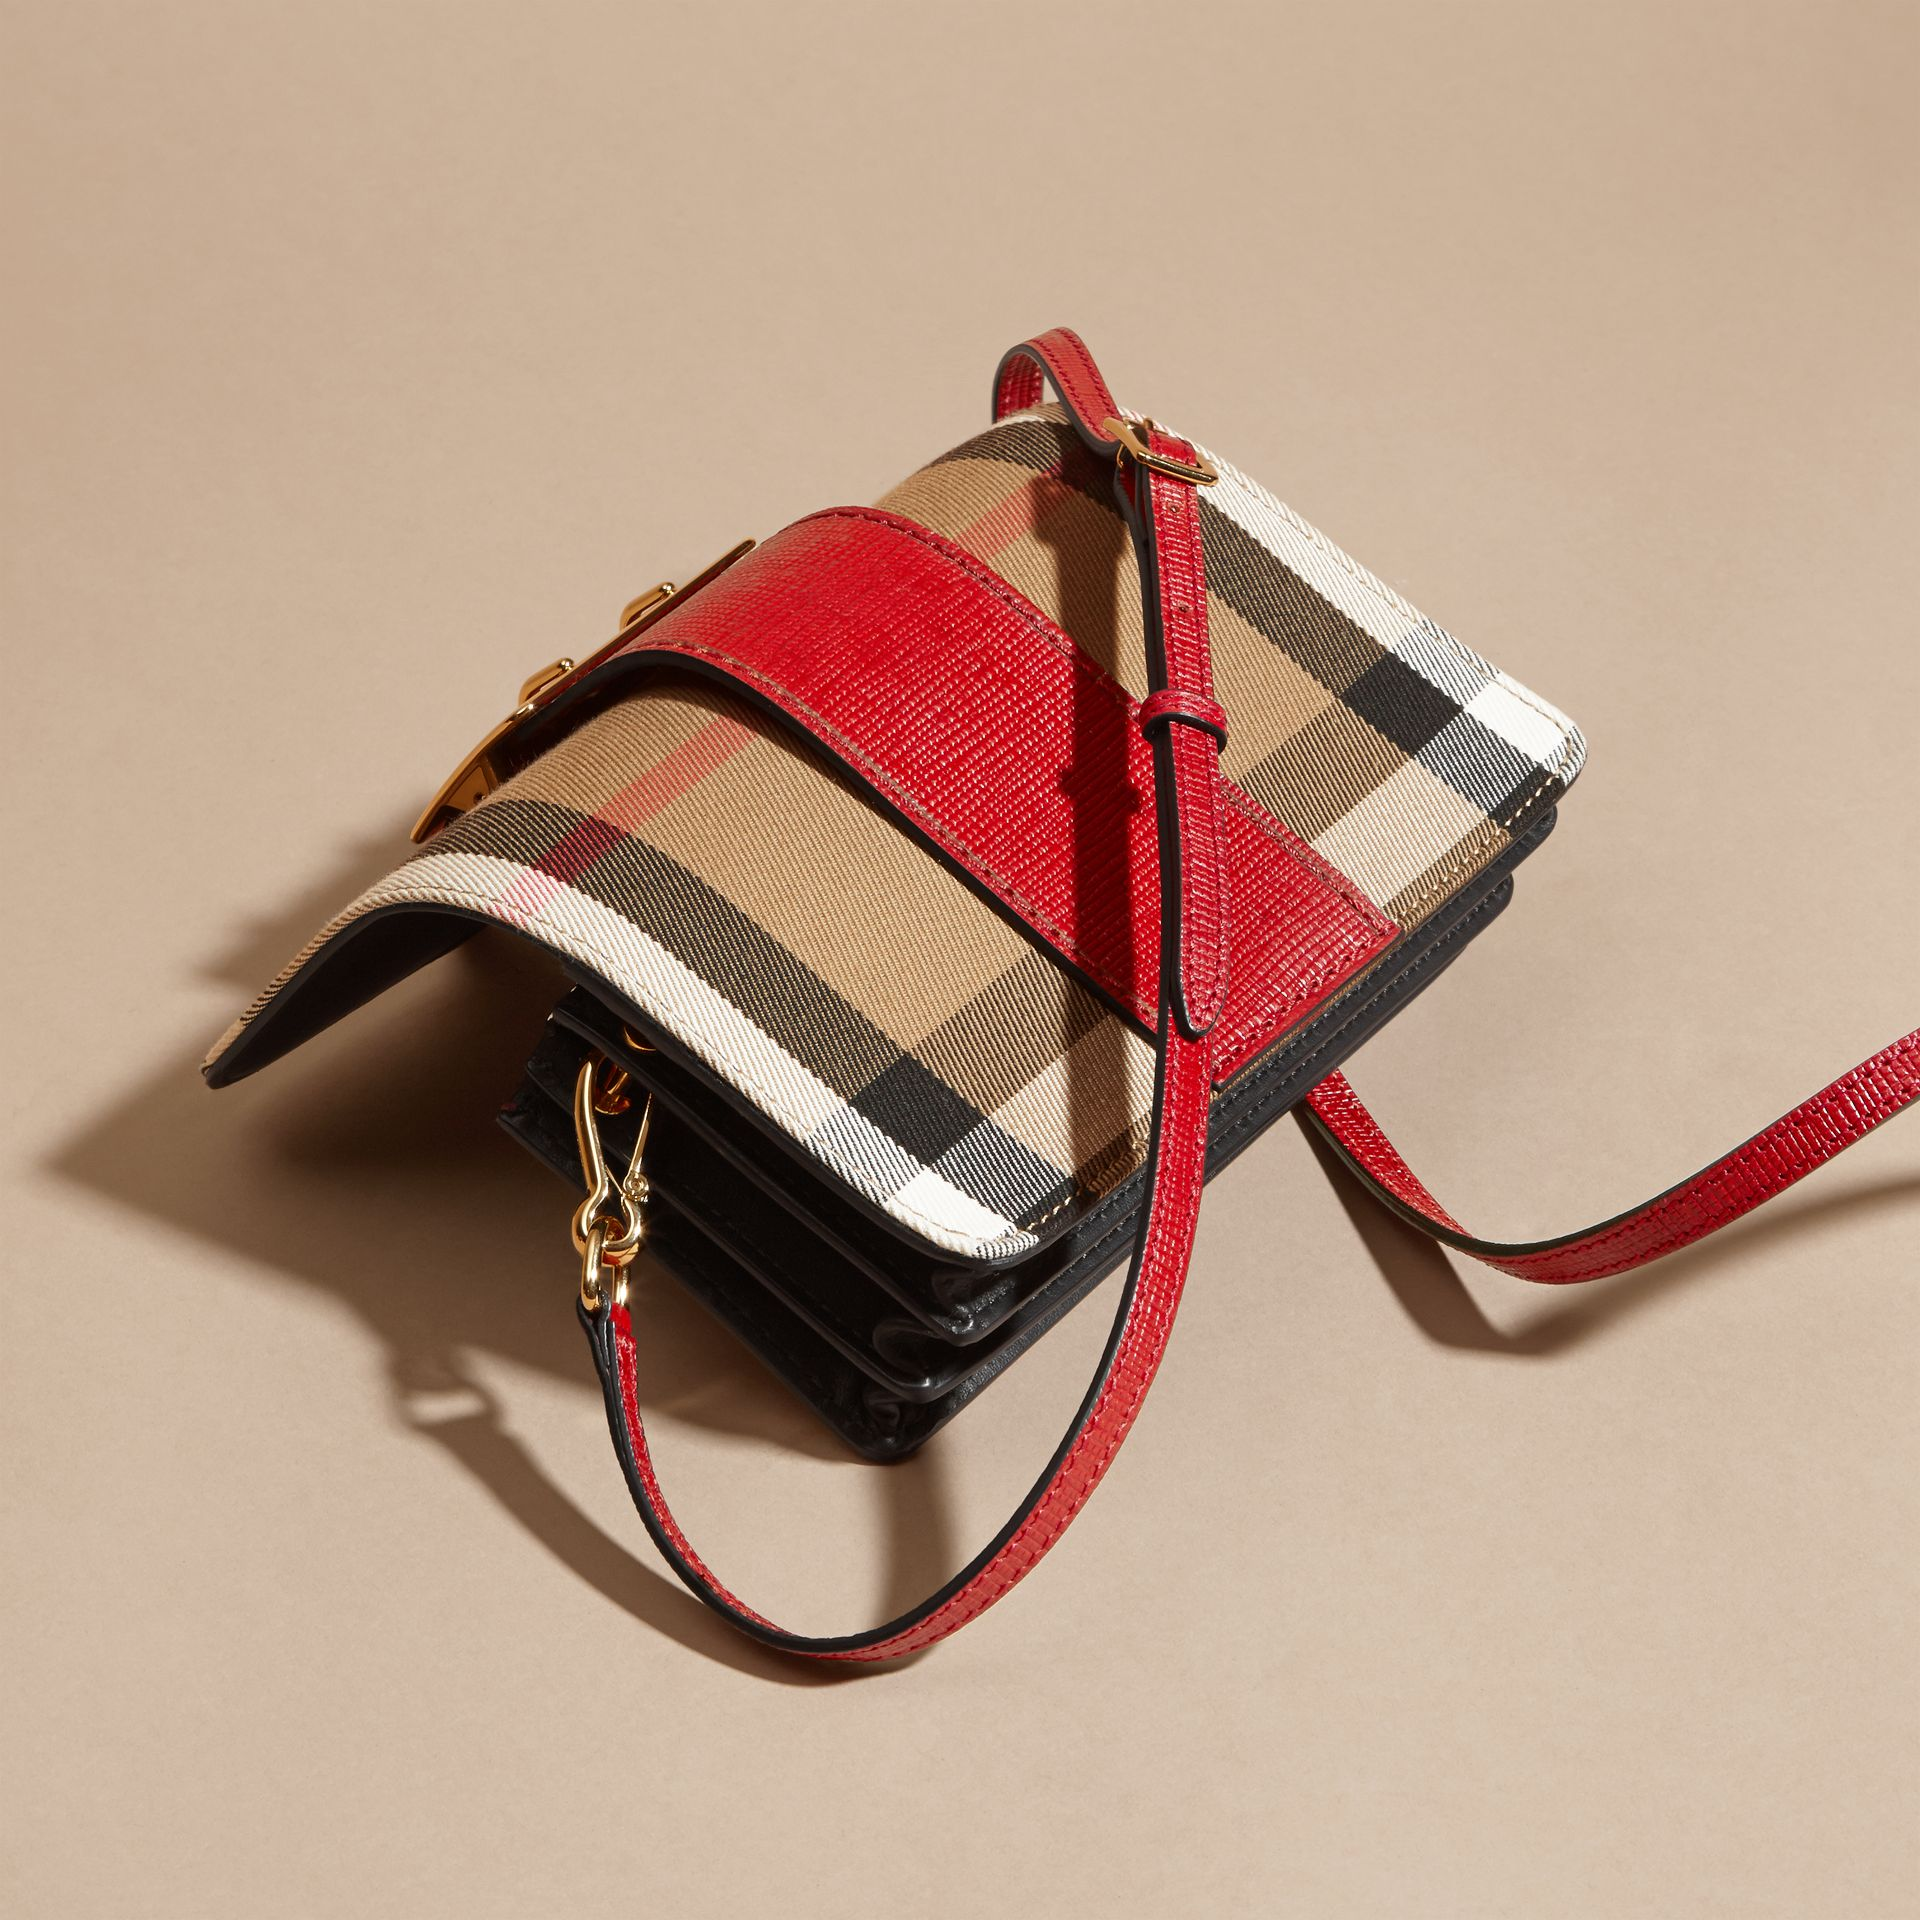 The Small Buckle Bag in House Check and Leather in Military Red/military Red - Women | Burberry - gallery image 5